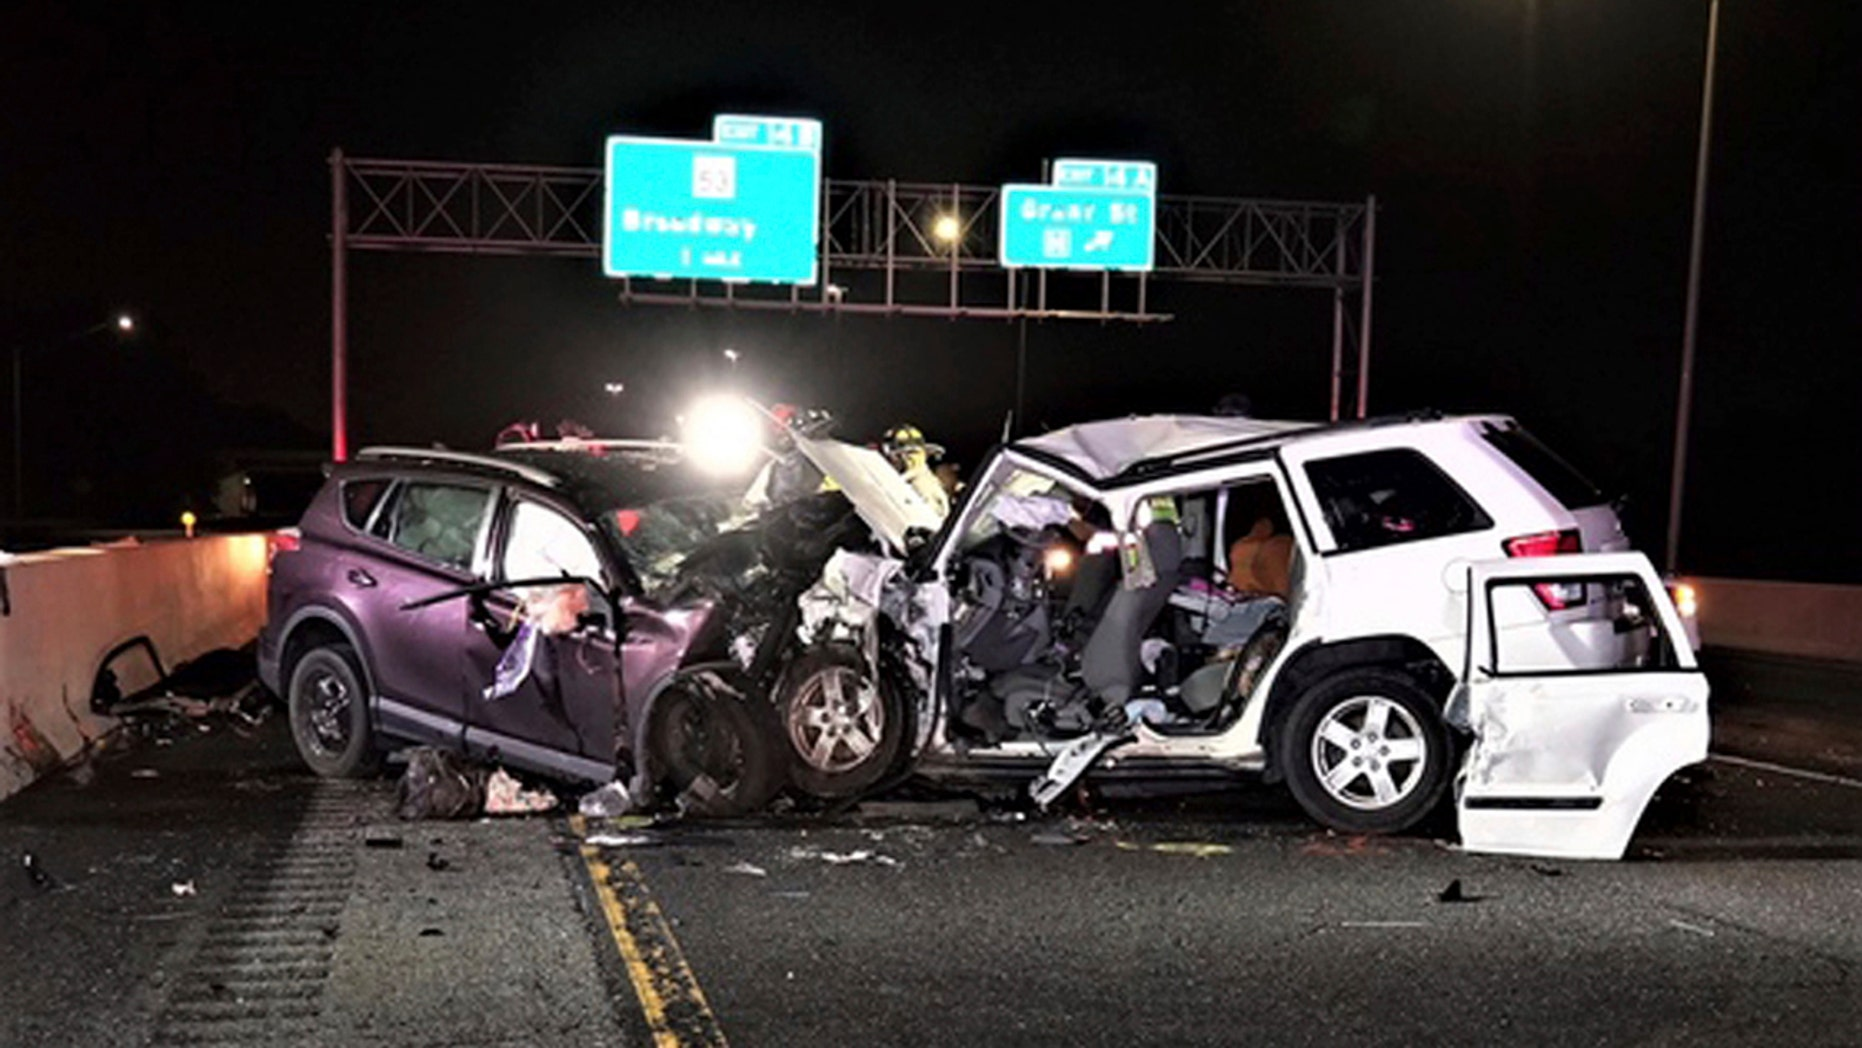 This photo provided by the Indiana State Police shows the scene of a crash on Interstate 90, early Saturday, Sept. 1, 2018 in Gary, Ind.